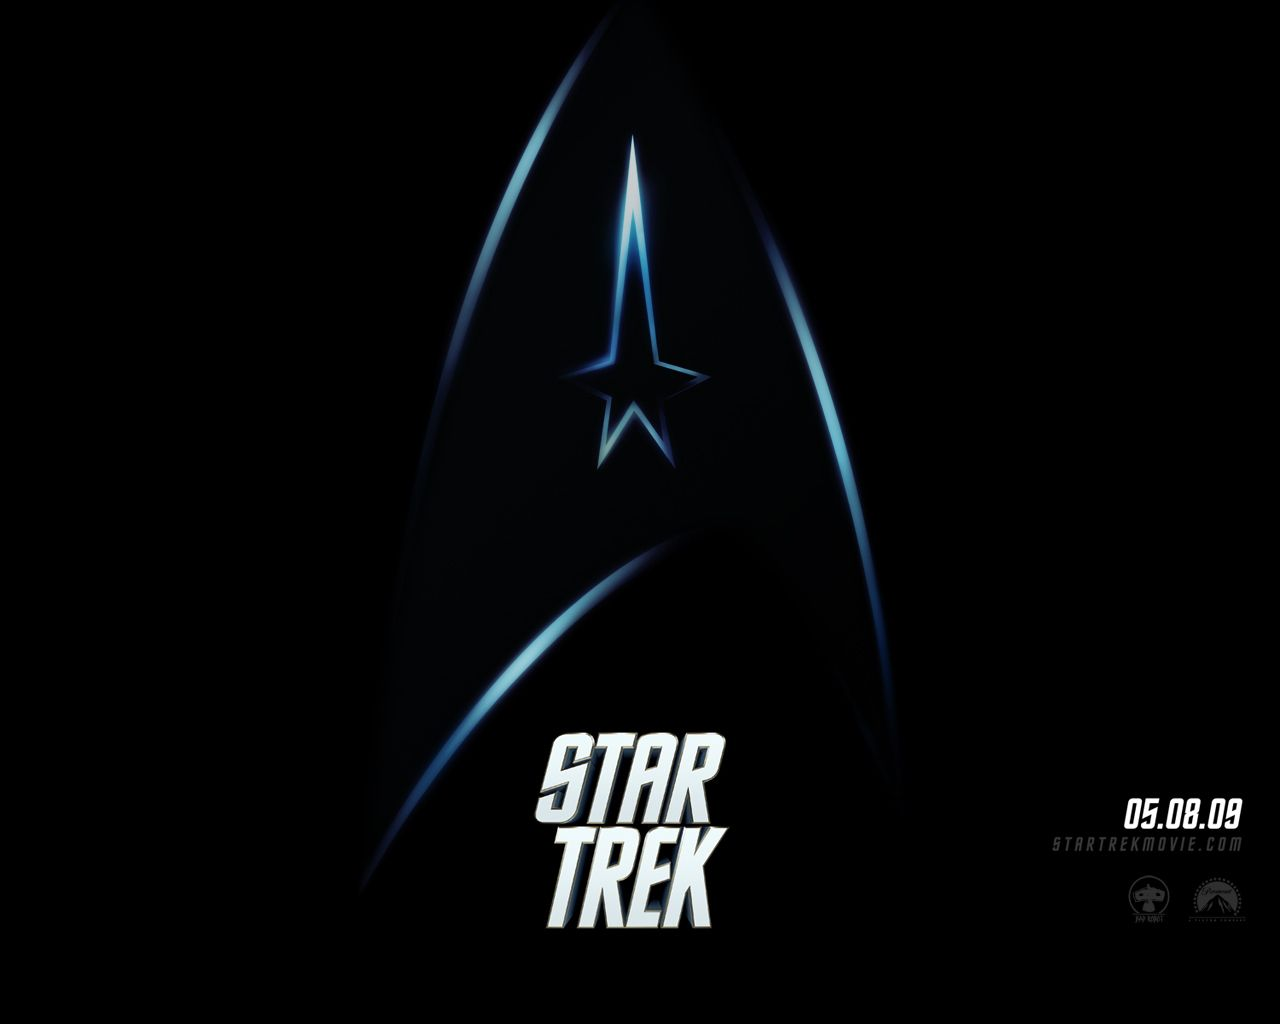 Star Trek Logo Movie Poster Wallpaper 1280x1024